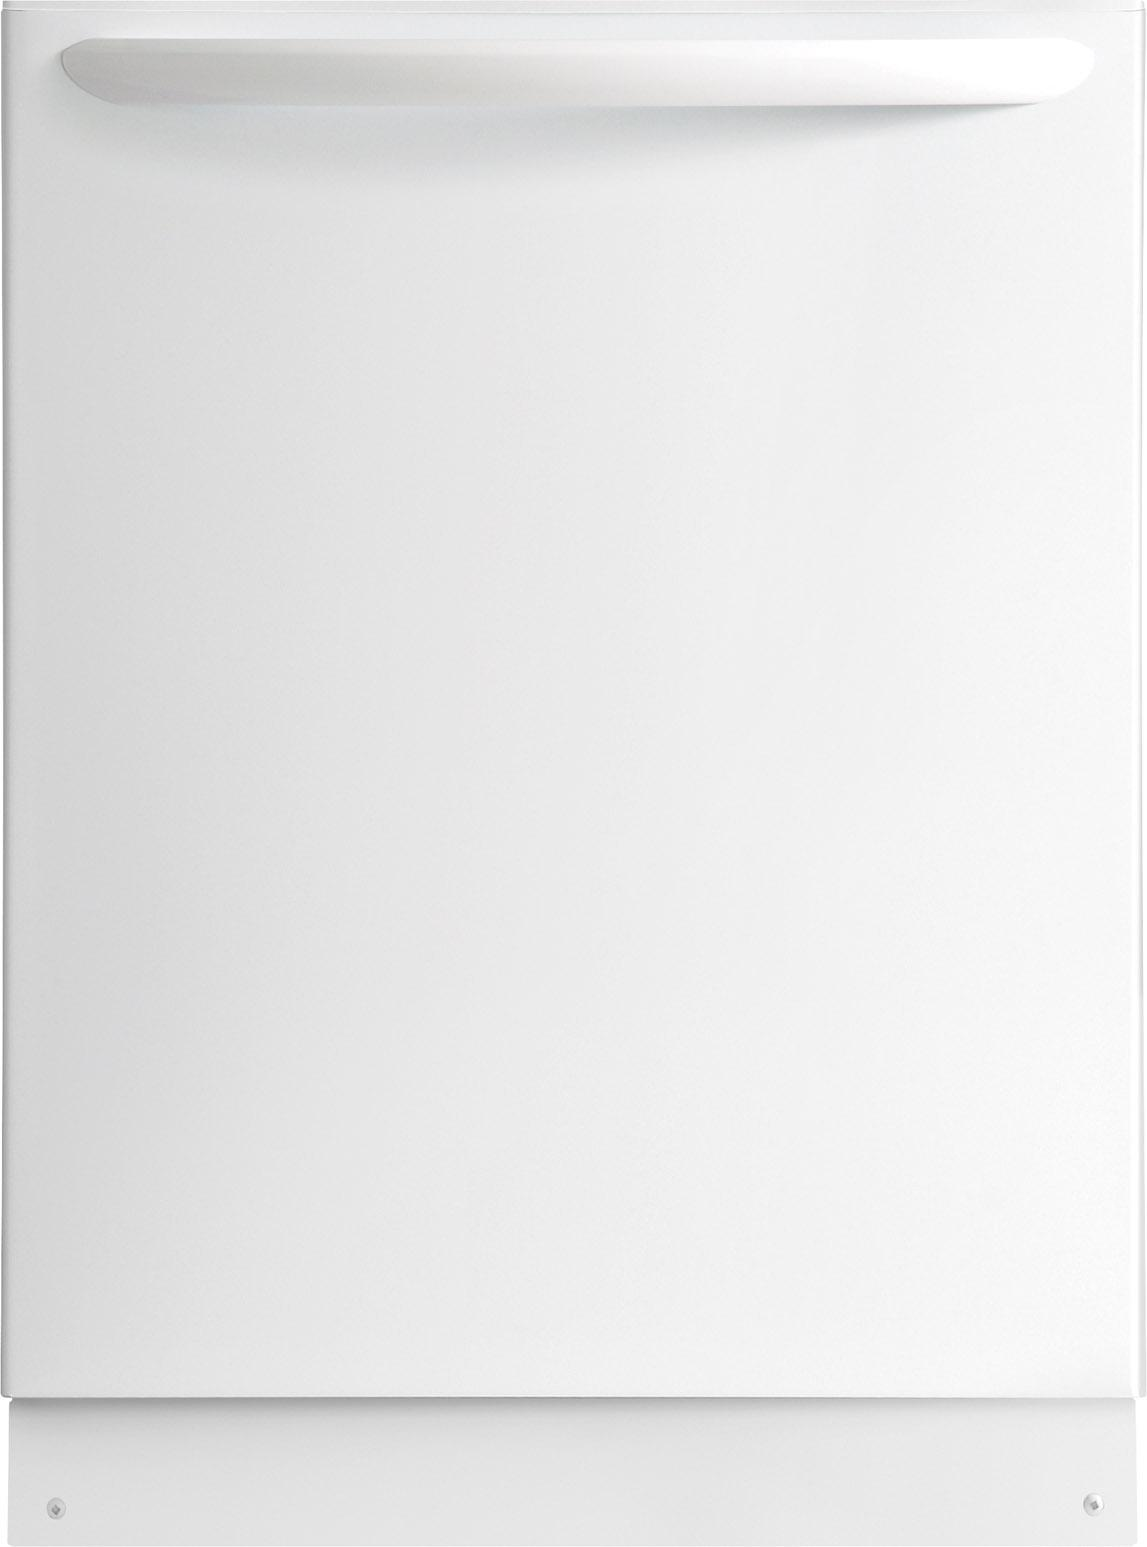 "Frigidaire Frigidaire Gallery Dishwashers 24"" Built-In Dishwasher - Item Number: FGID2474QW"